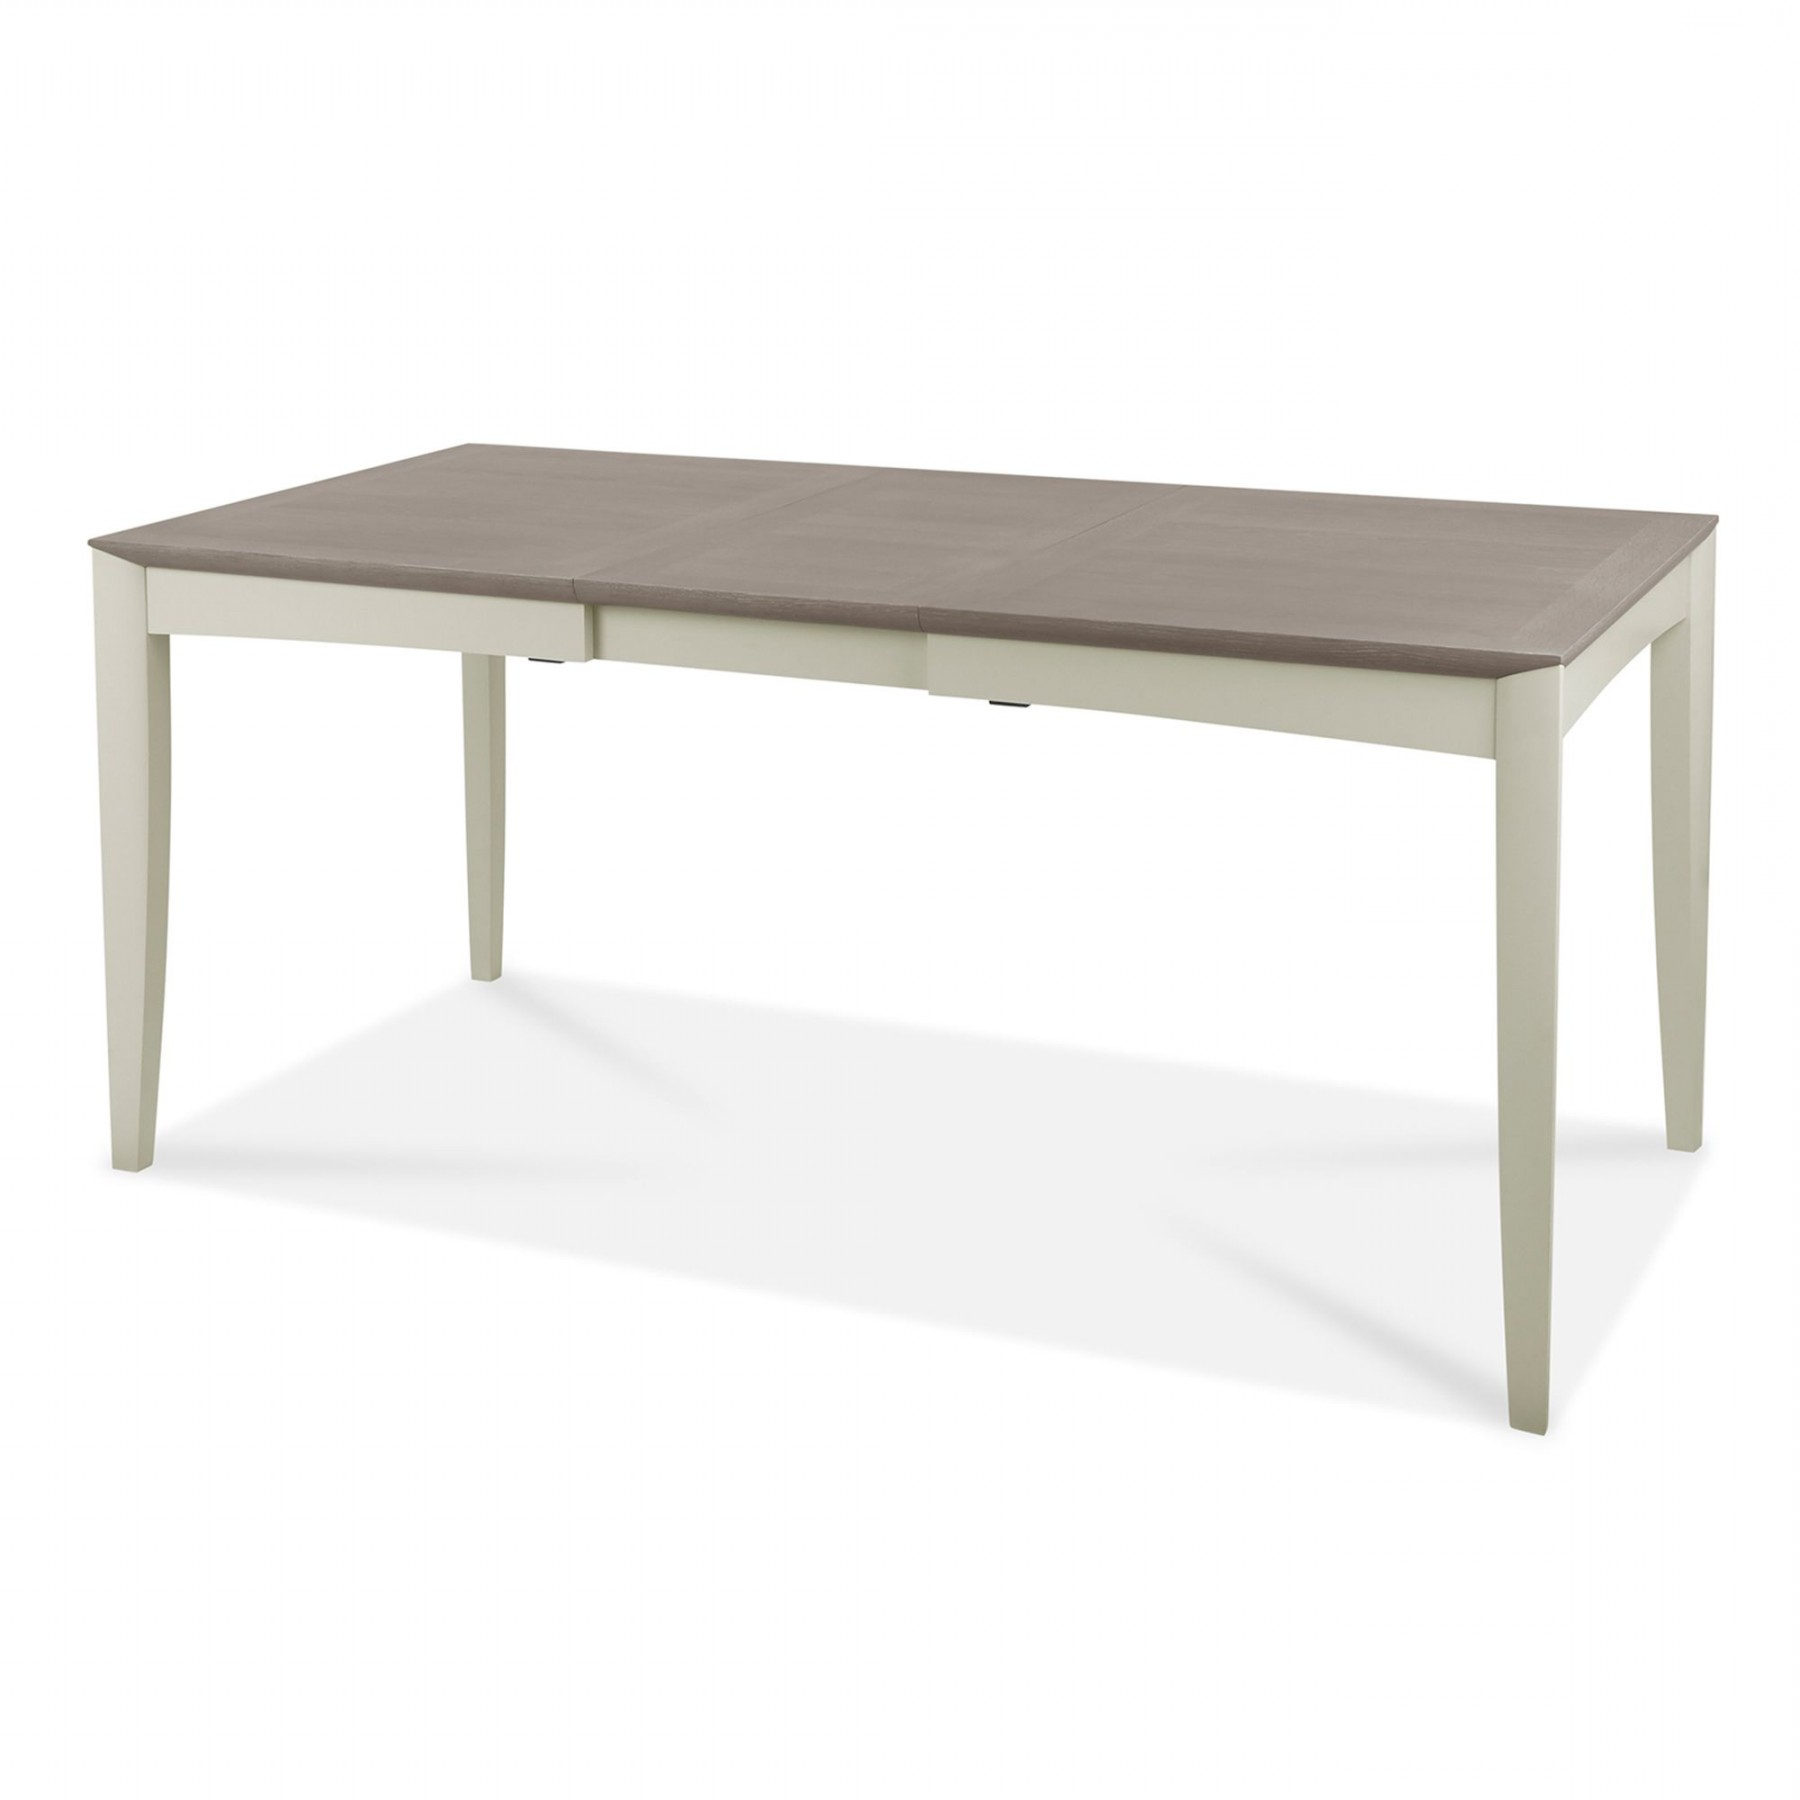 Oakley Grey 4-6 Extending Table